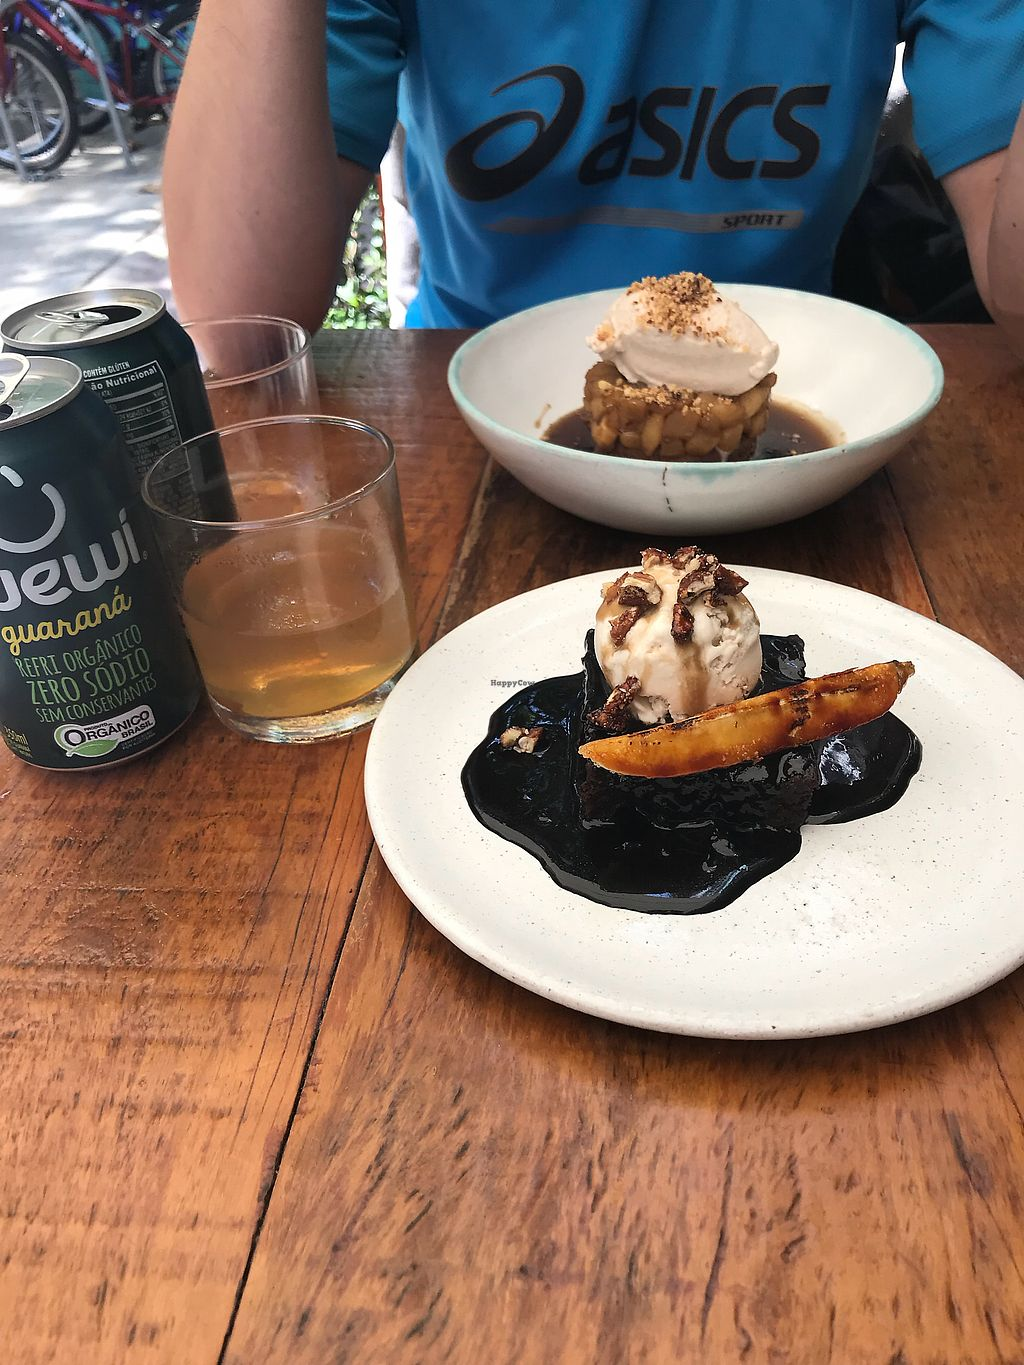 """Photo of Teva  by <a href=""""/members/profile/dazedkiwi"""">dazedkiwi</a> <br/>Brownie & Sticky Toffee Pudding <br/> October 17, 2017  - <a href='/contact/abuse/image/78854/316093'>Report</a>"""